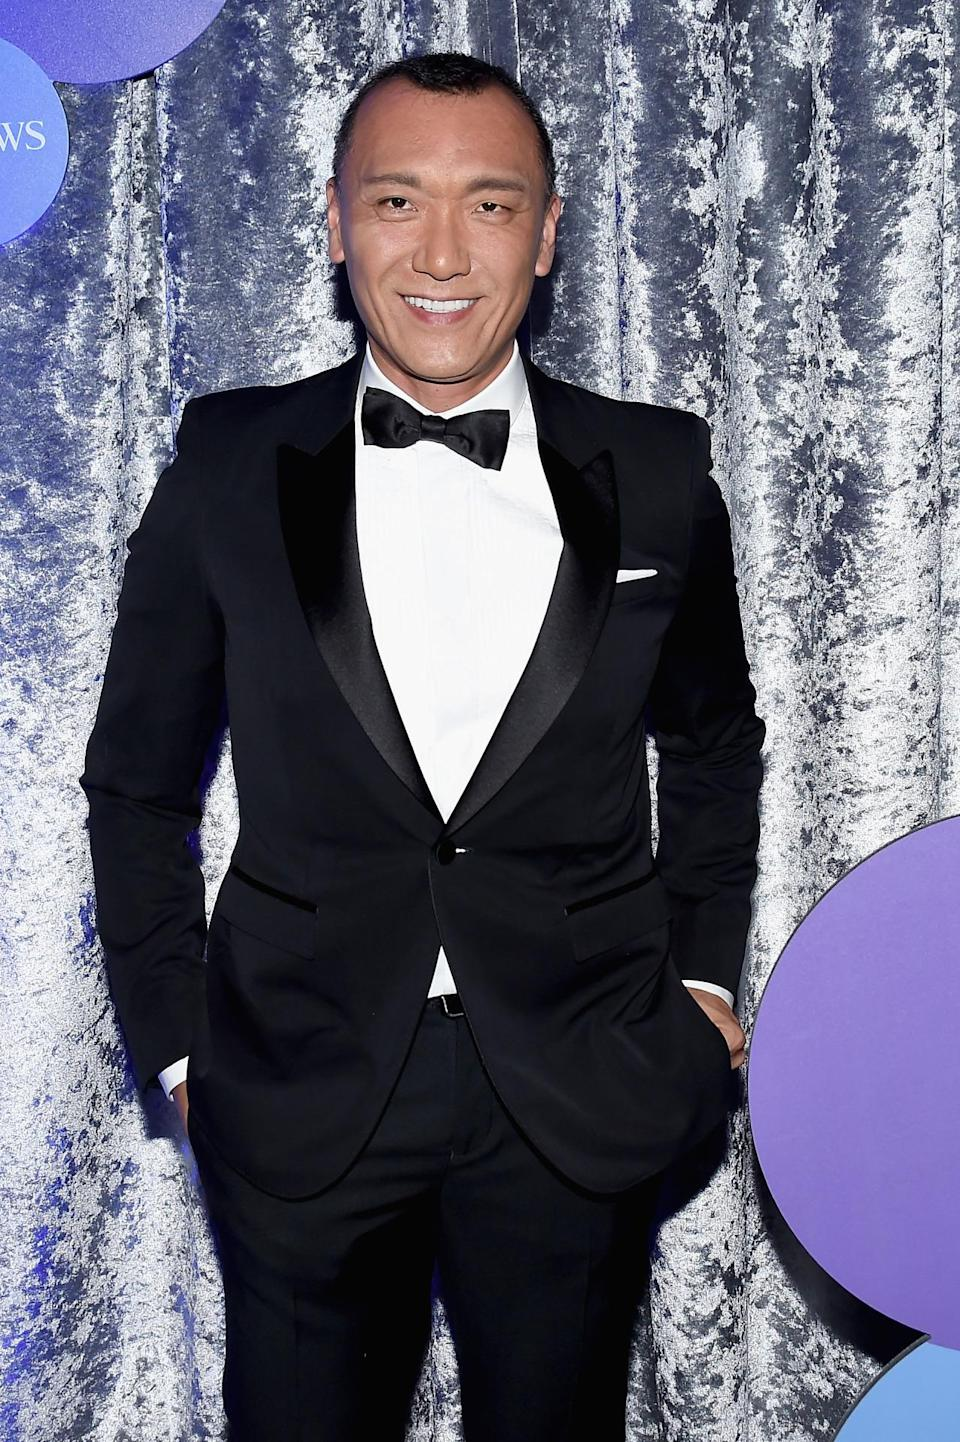 <p>Journalist Joe Zee attends the Yahoo News/ABC News White House Correspondents' Dinner pre-party at the Washington Hilton, April 30. <i>(Photo: Nicholas Hunt/Getty Images for Yahoo)</i></p>